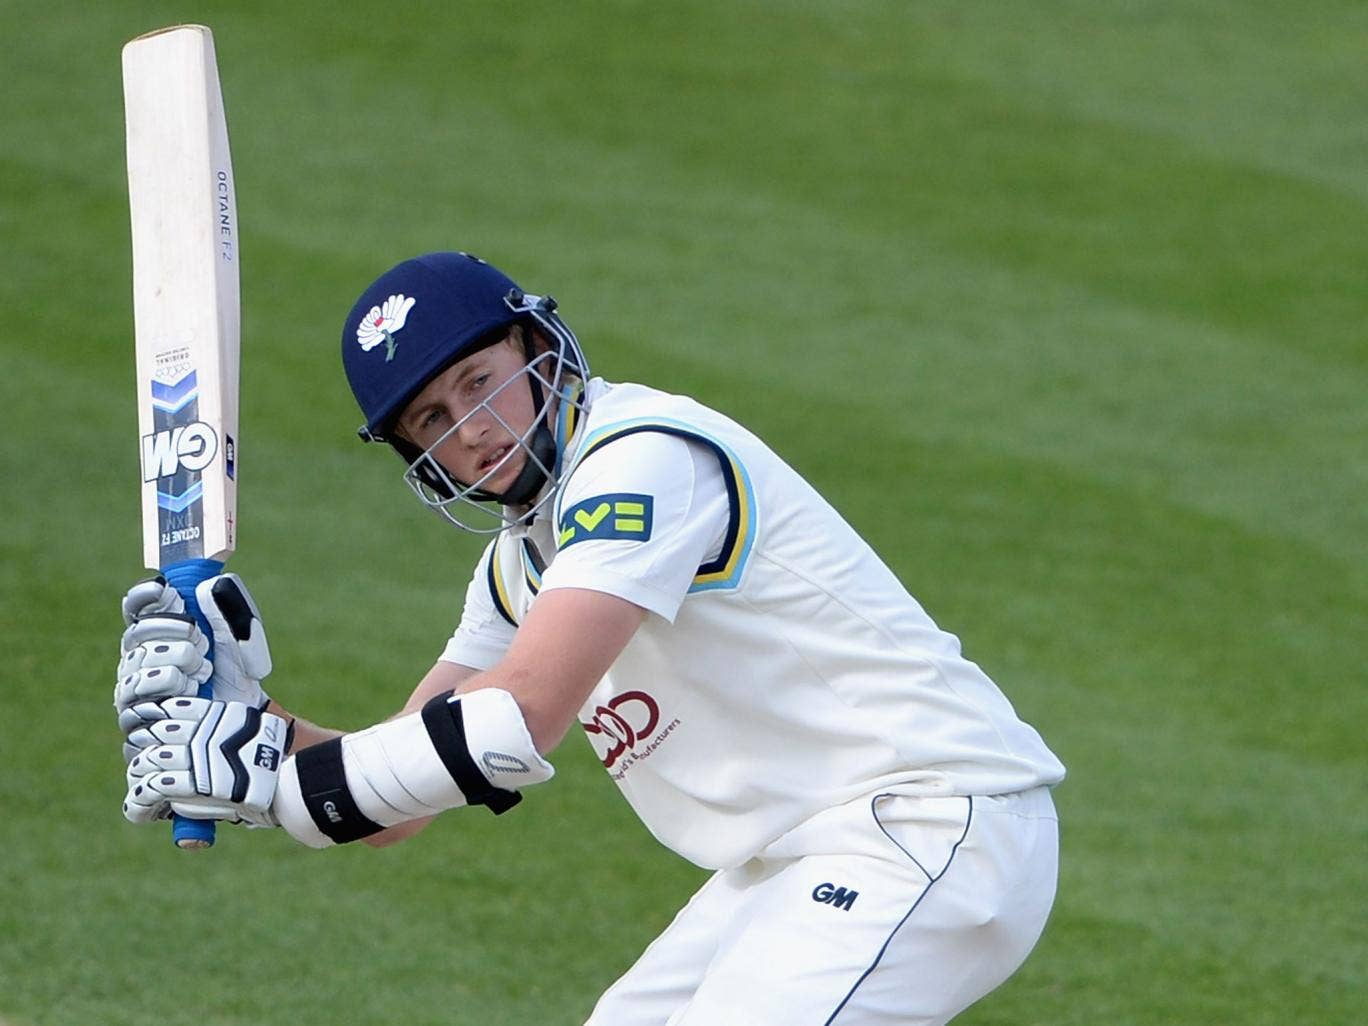 Joe Root showed his class with 182 to help Yorkshire to victory